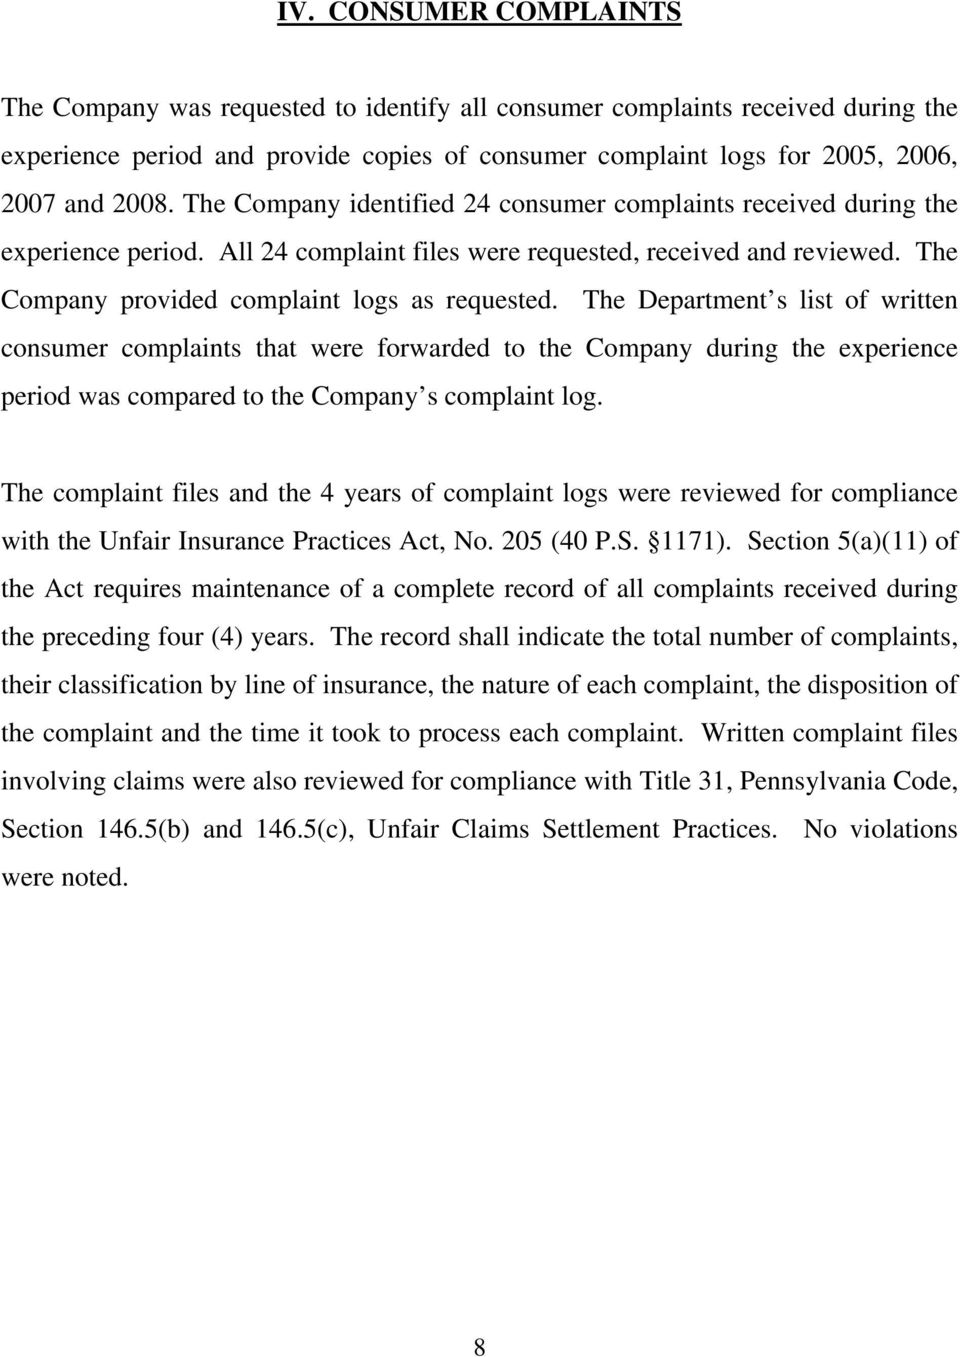 The Department s list of written consumer complaints that were forwarded to the Company during the experience period was compared to the Company s complaint log.